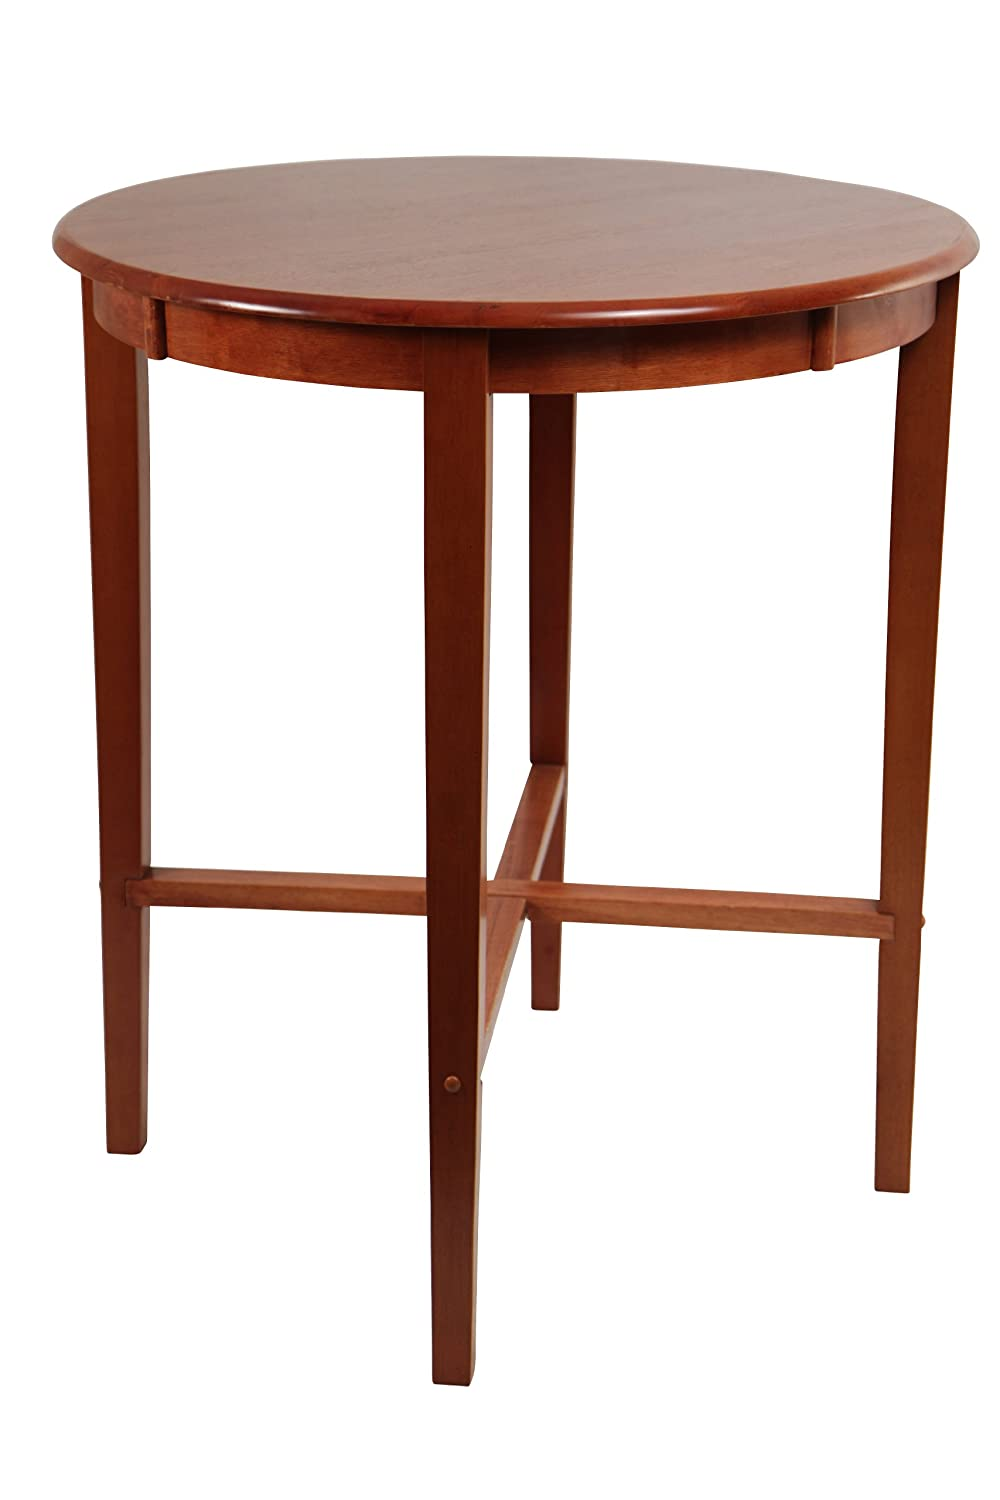 Gentil Amazon.com: Boraam 70564 Round Pub Table, 42 Inch, Cherry: Kitchen U0026 Dining